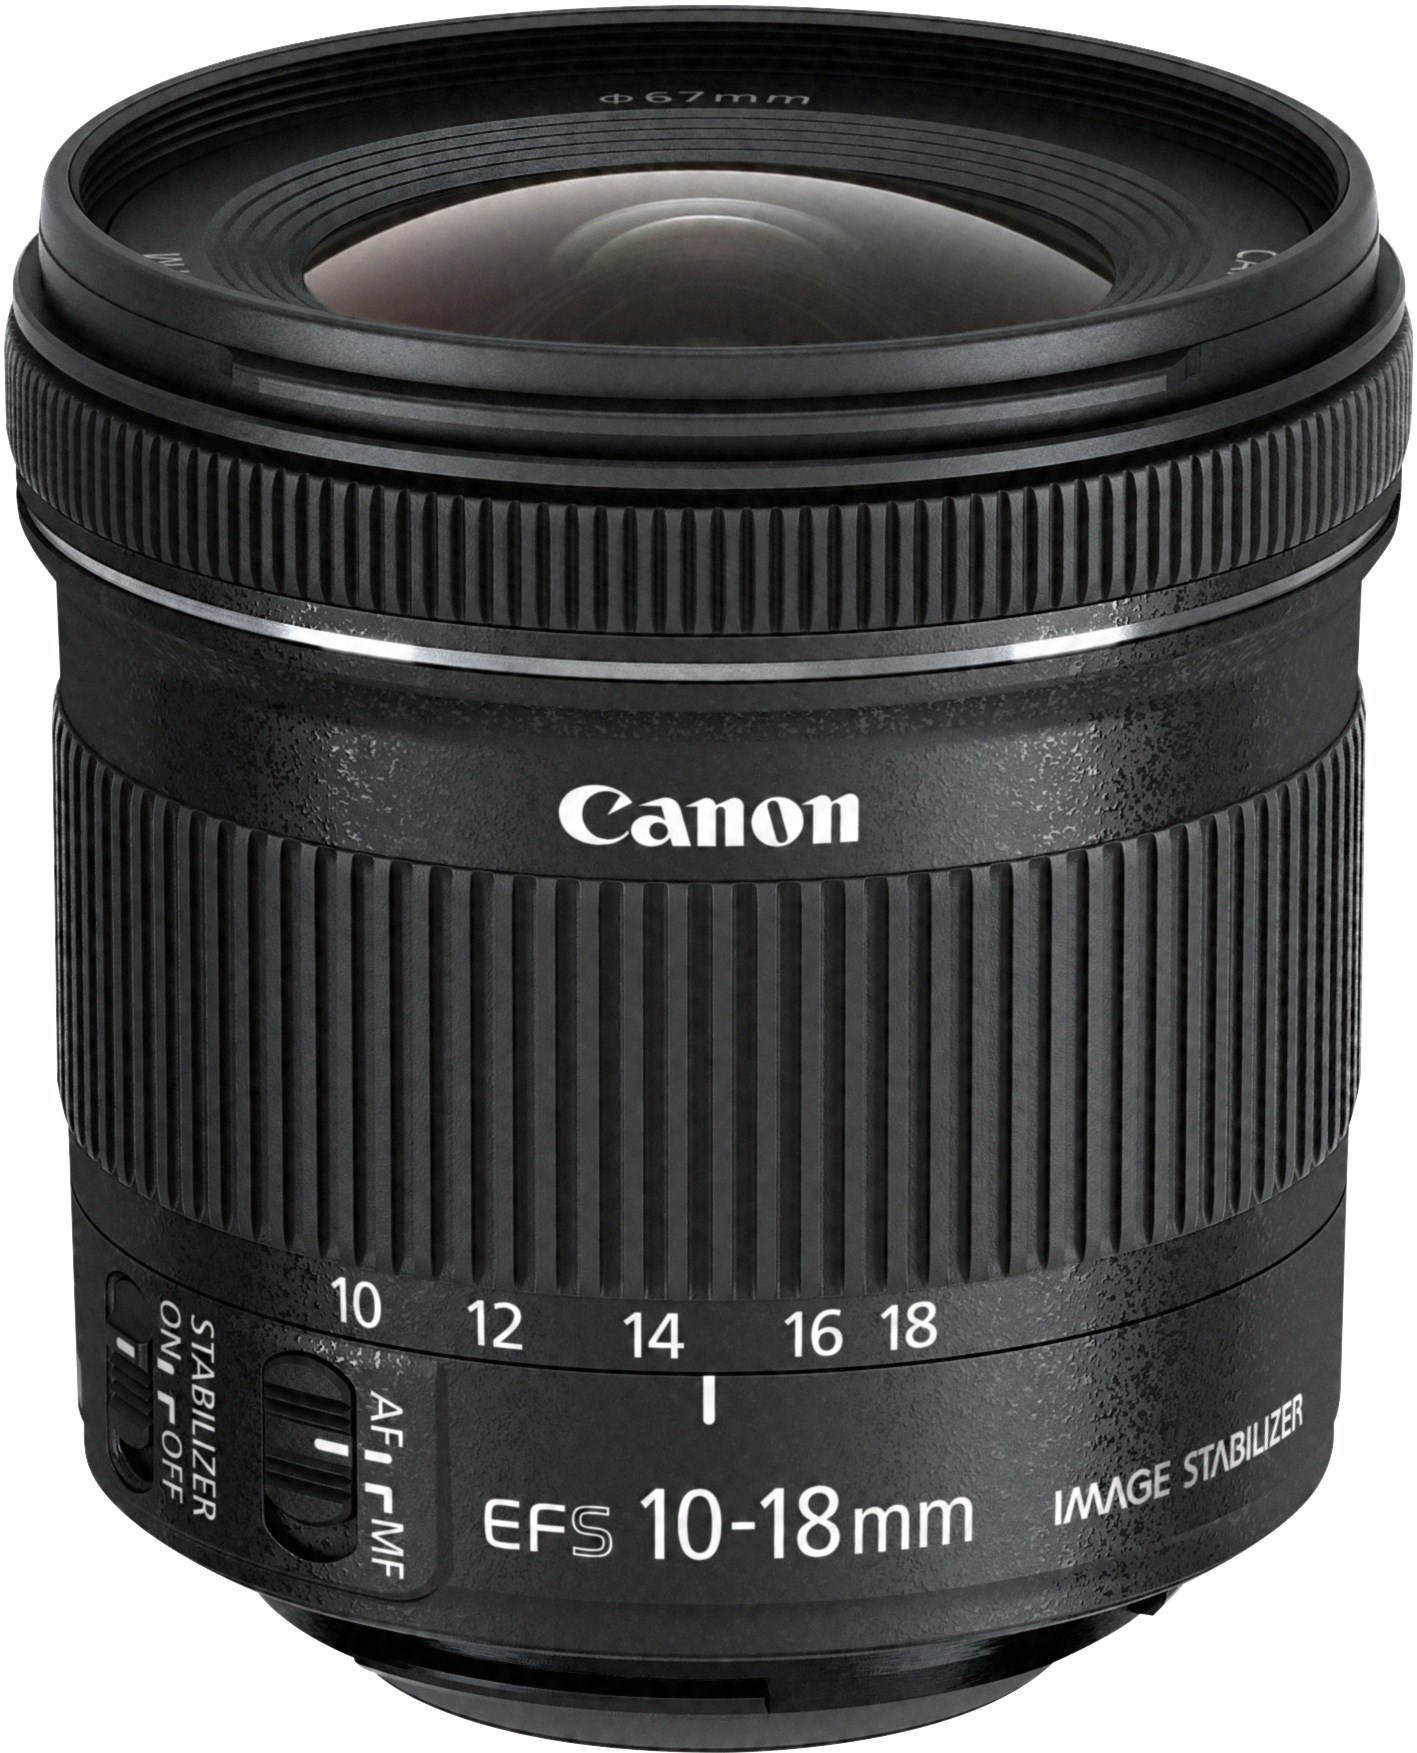 Canon EF-S 10-18mm F4.5 - 5.6 IS STM